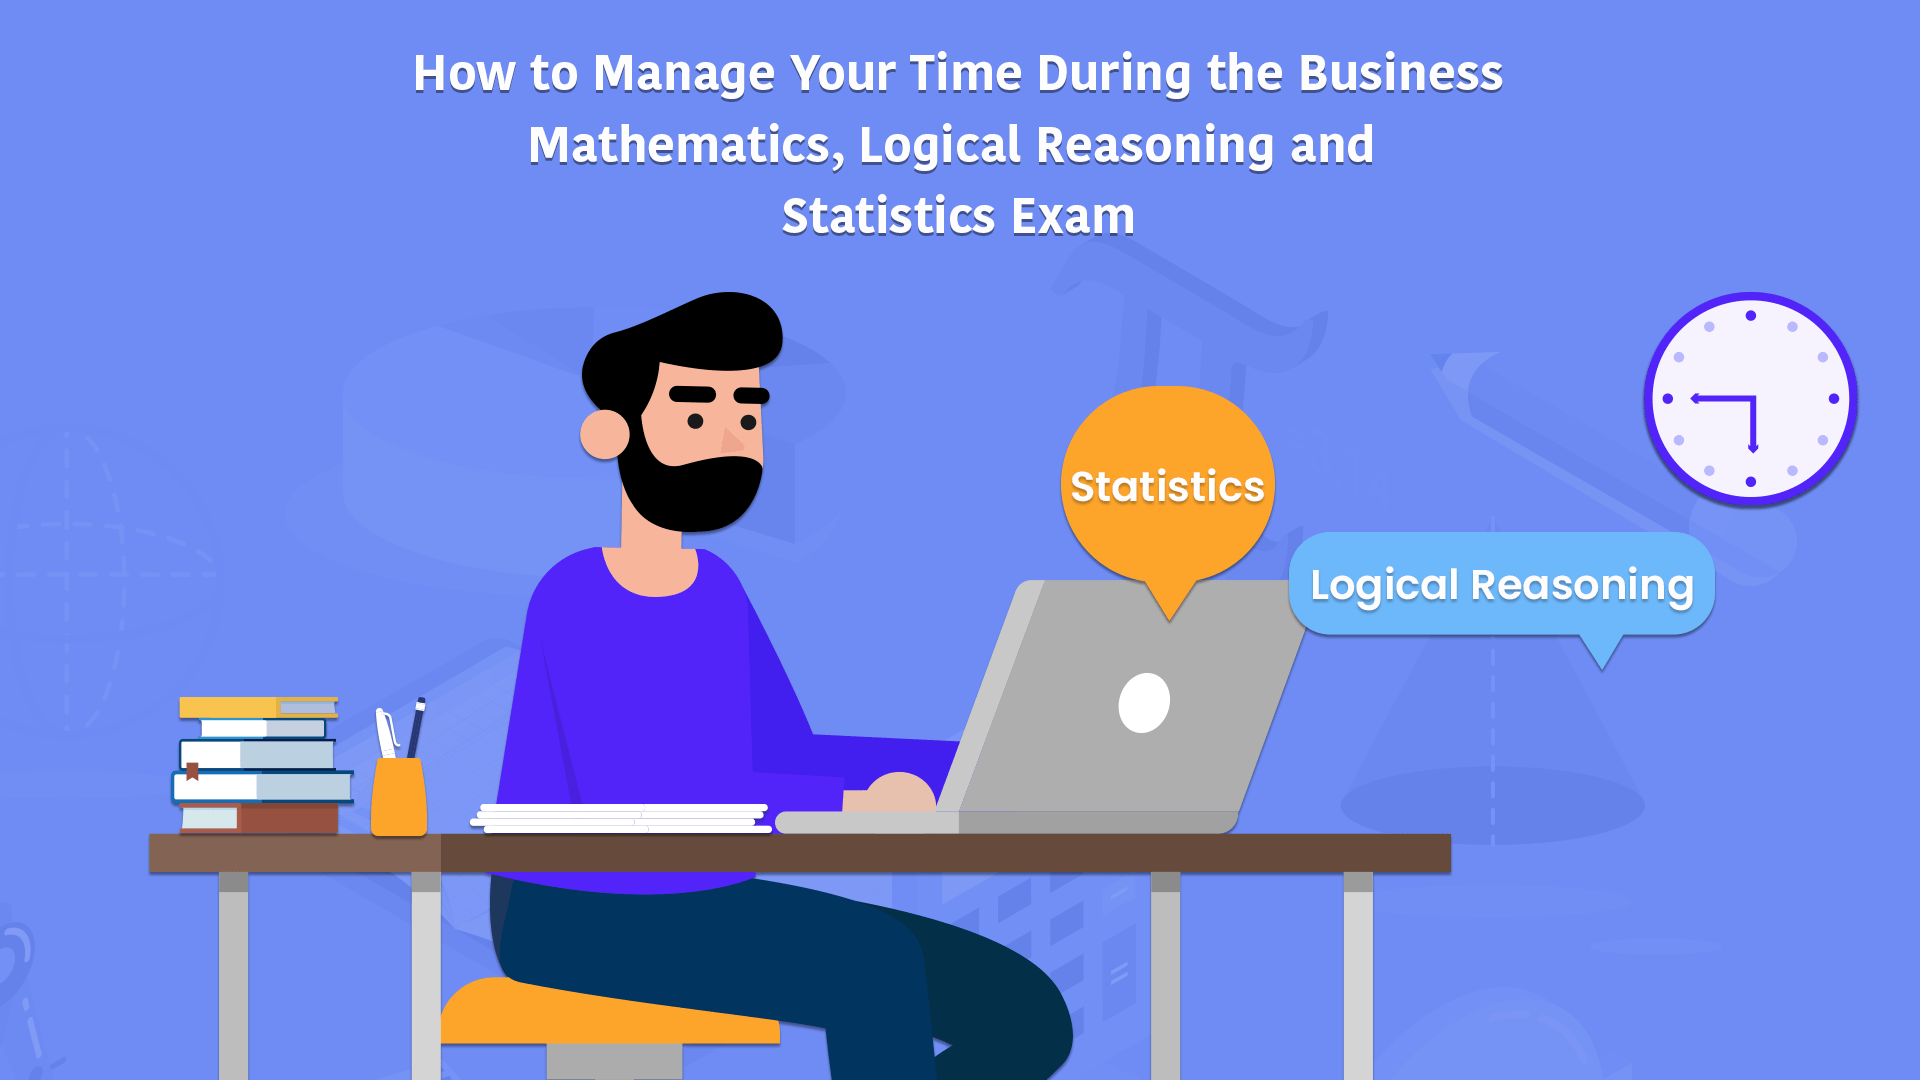 How to Manage Your Time When Attempting the CA Foundation Business Mathematics, Logical Reasoning and Statistics Paper